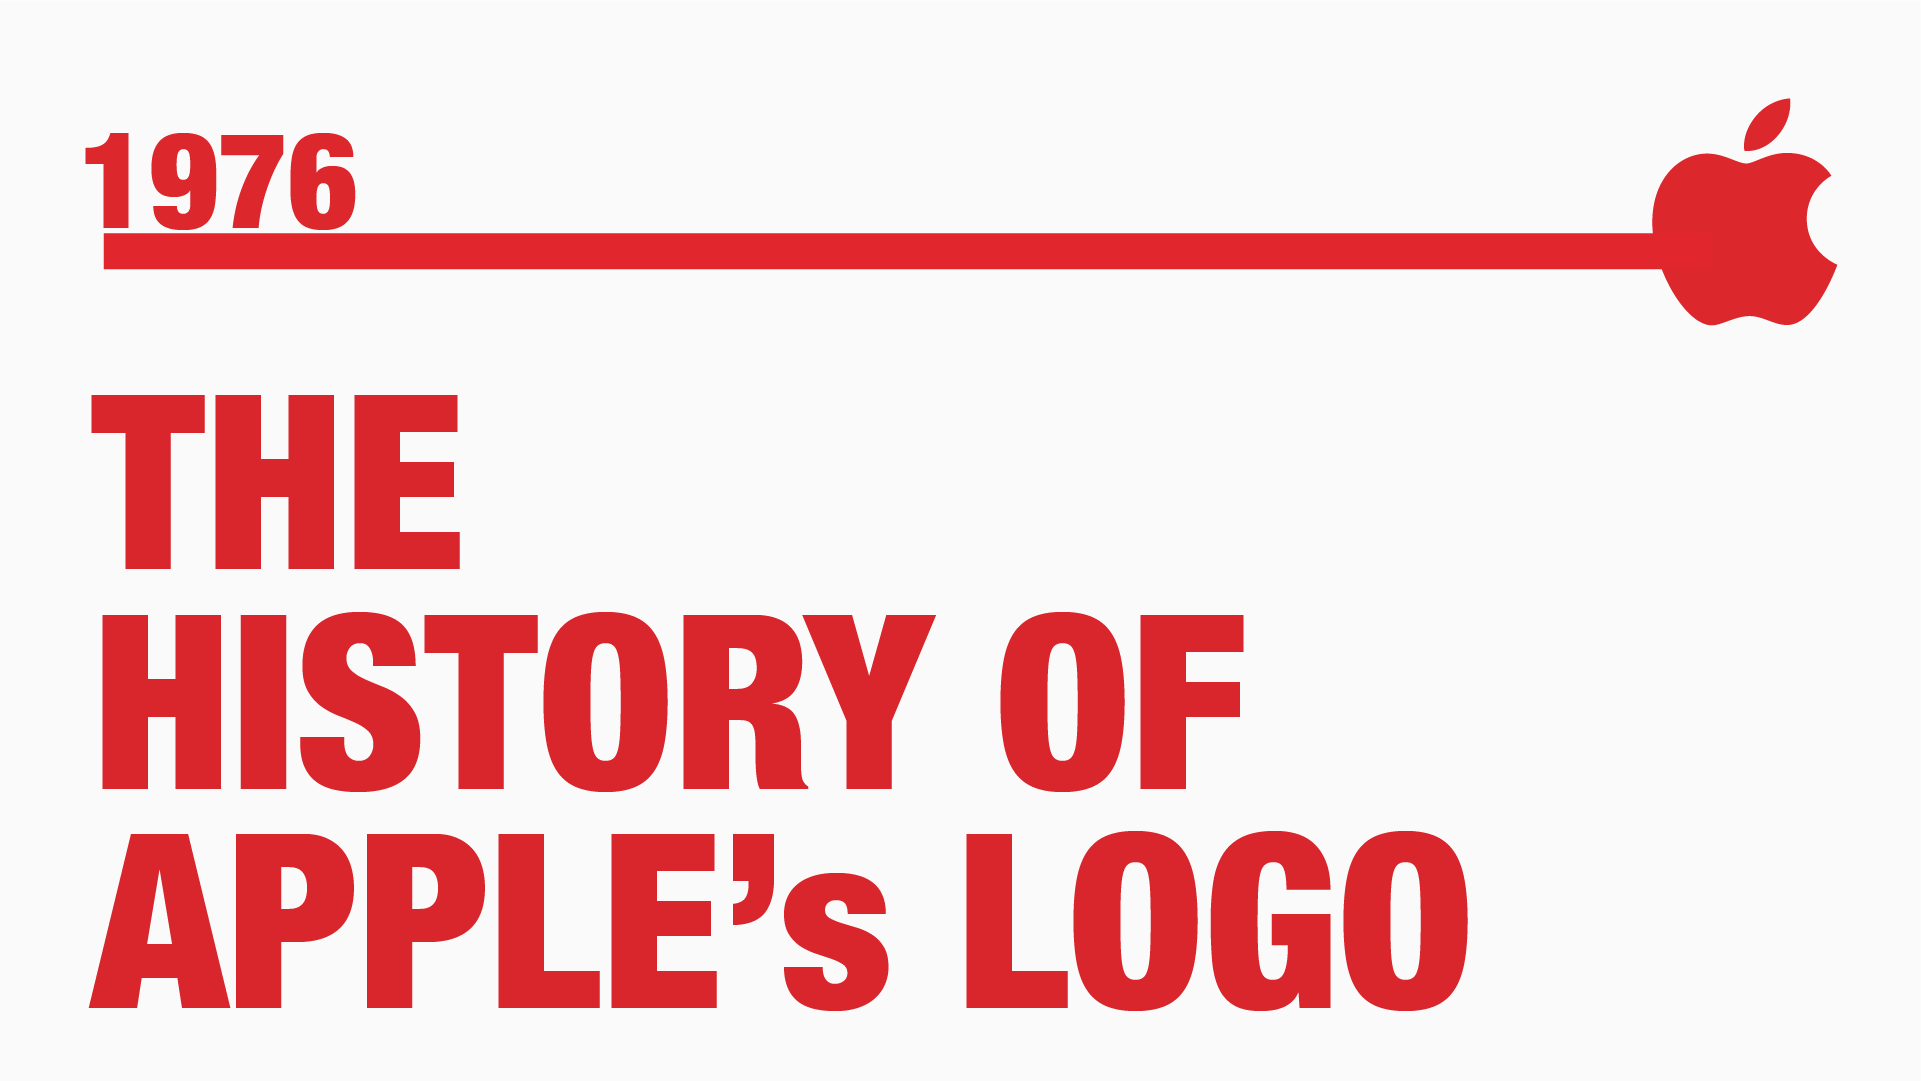 The History of Apples Logo - Manraj Ubhi